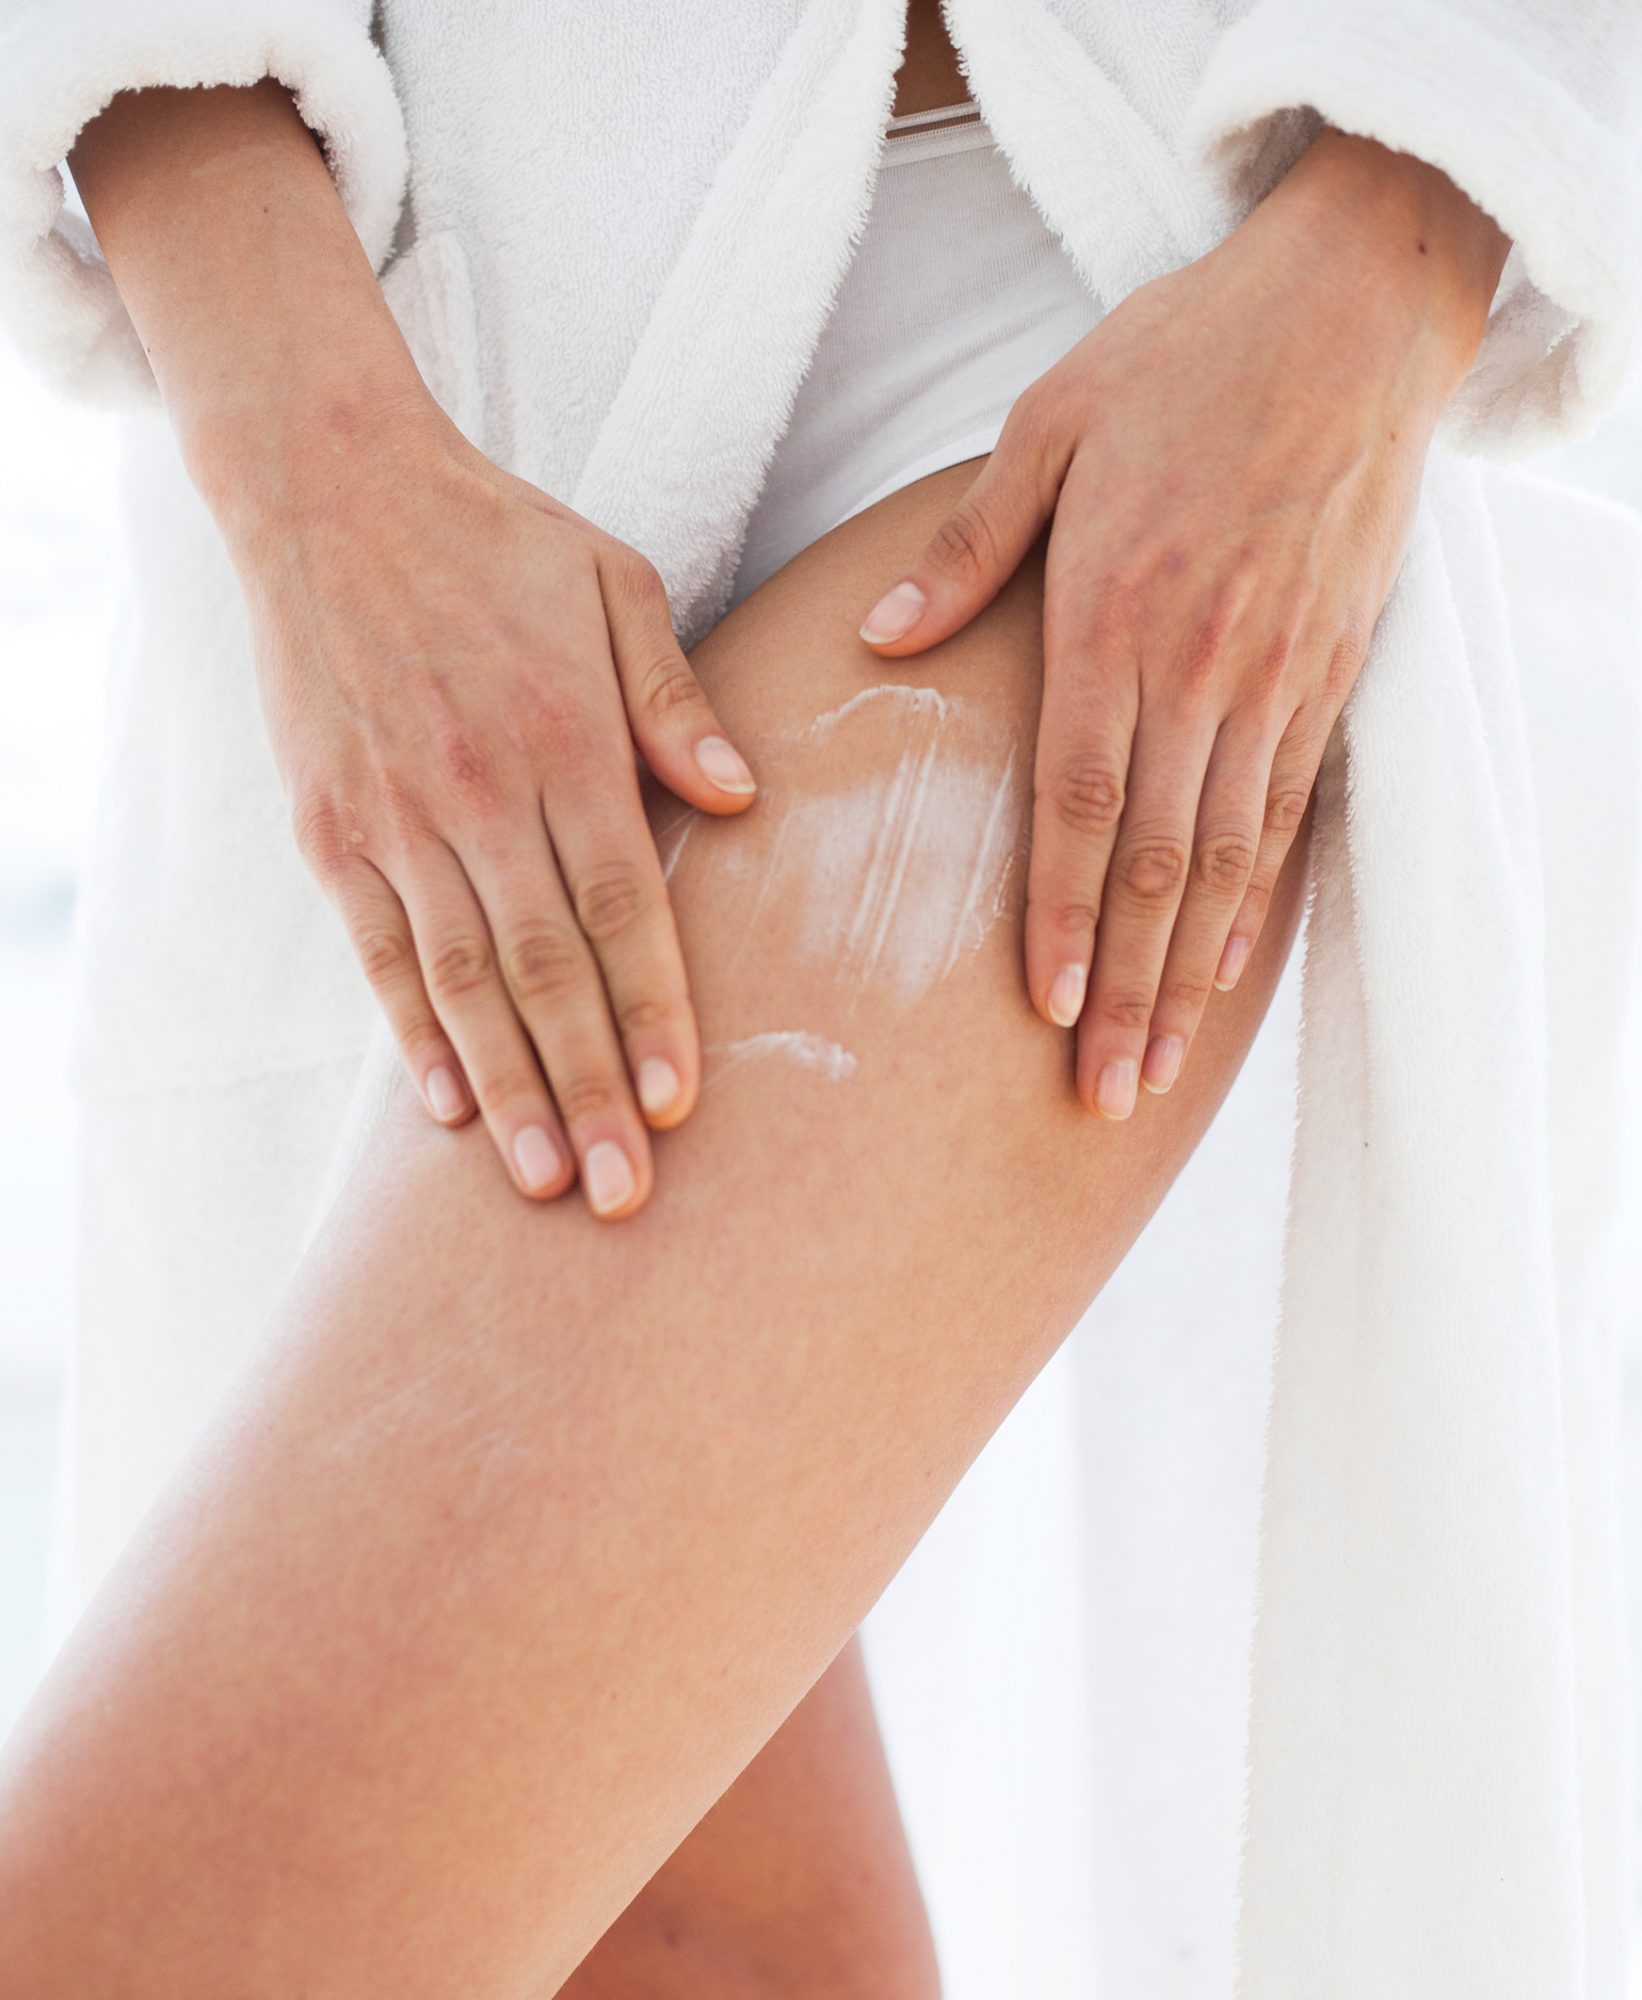 What You Can (and Can't) Do About Cellulite